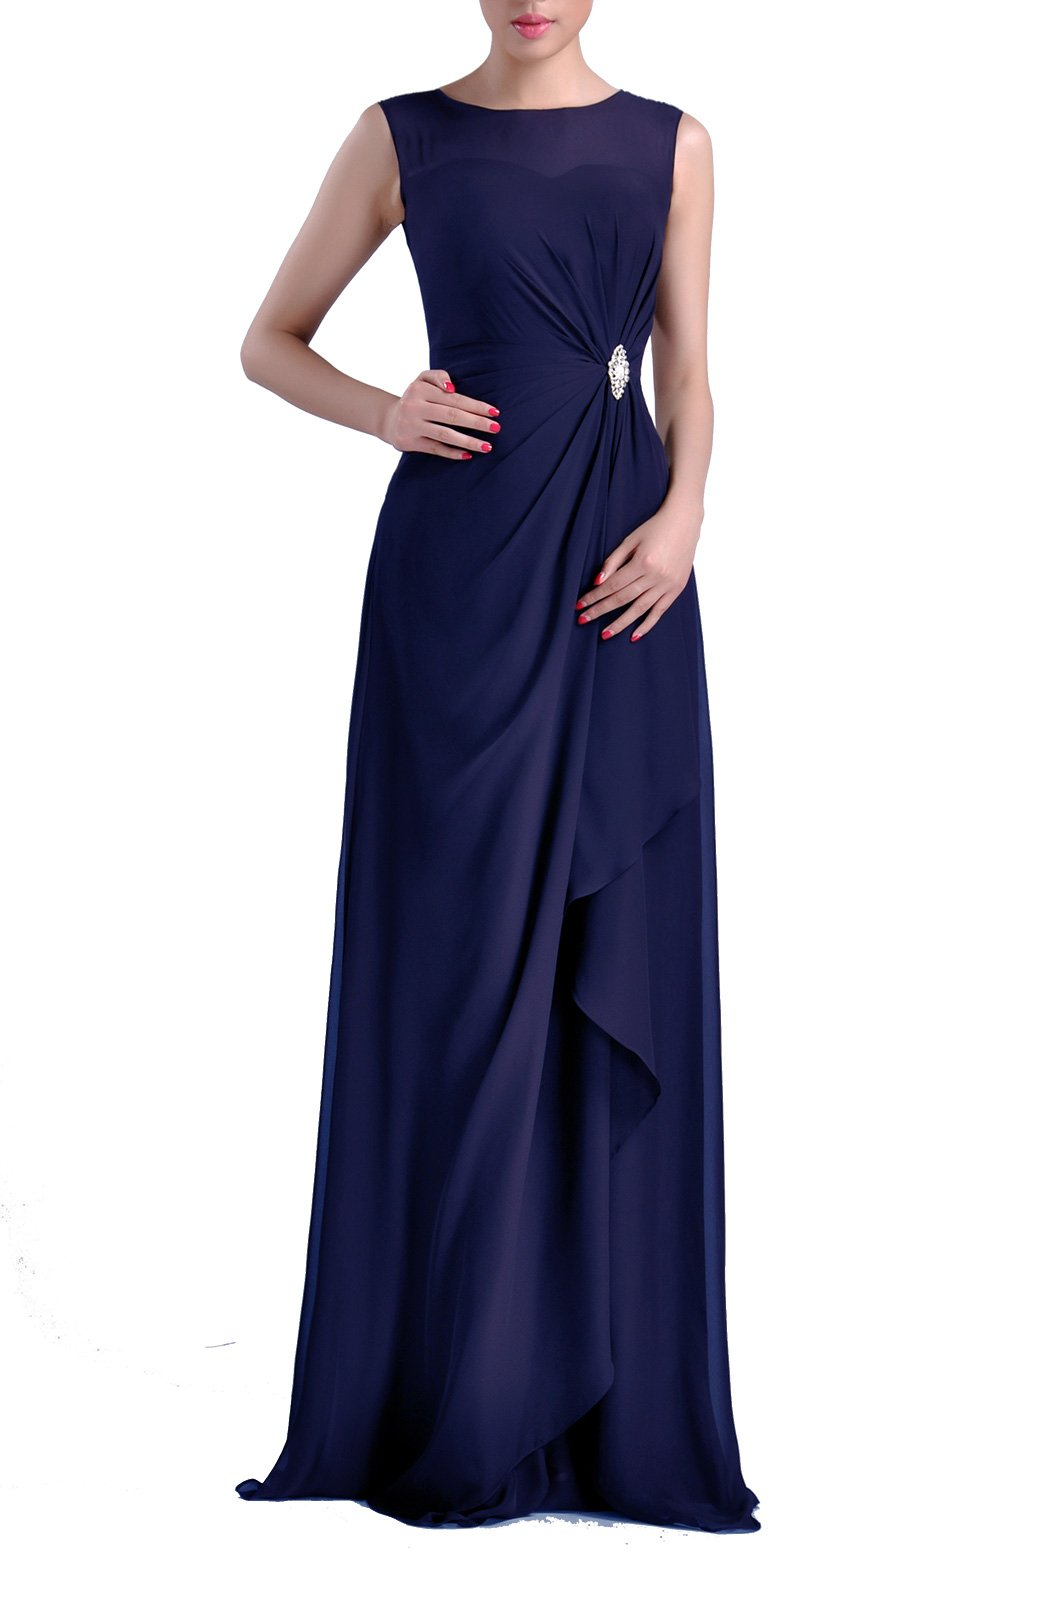 Formal Bridesmaid Dress Chiffon Special Occasion Long Mother of the Bride Groom Dress, Color Navy Blue ,12 by Adorona